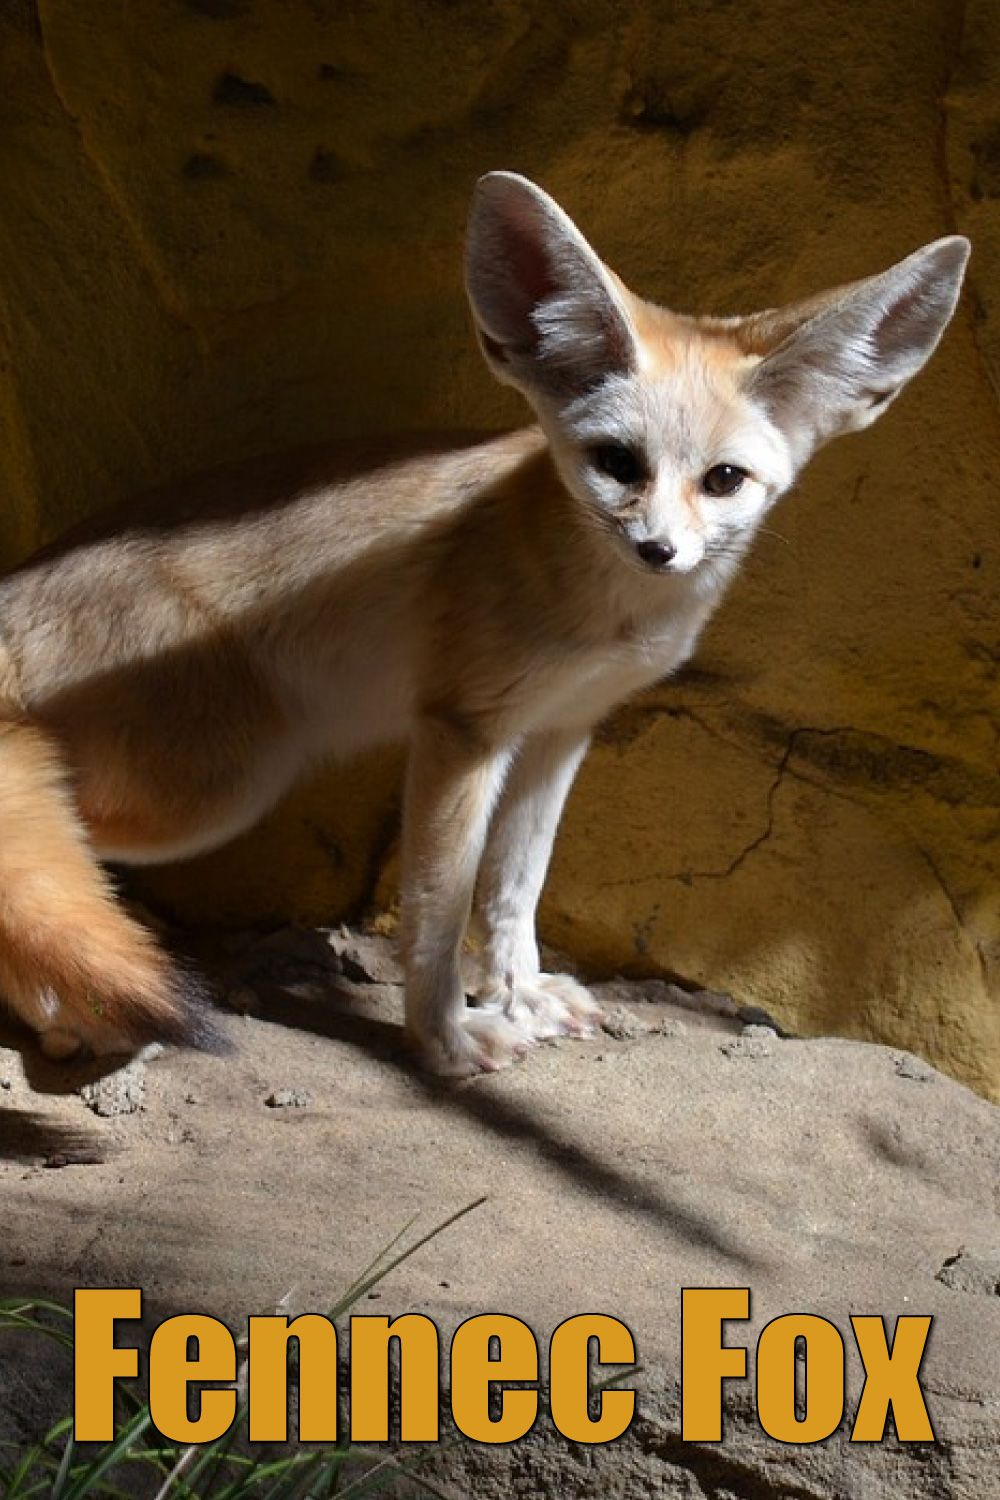 Fennec Fox Facts, Pictures & Information African Desert